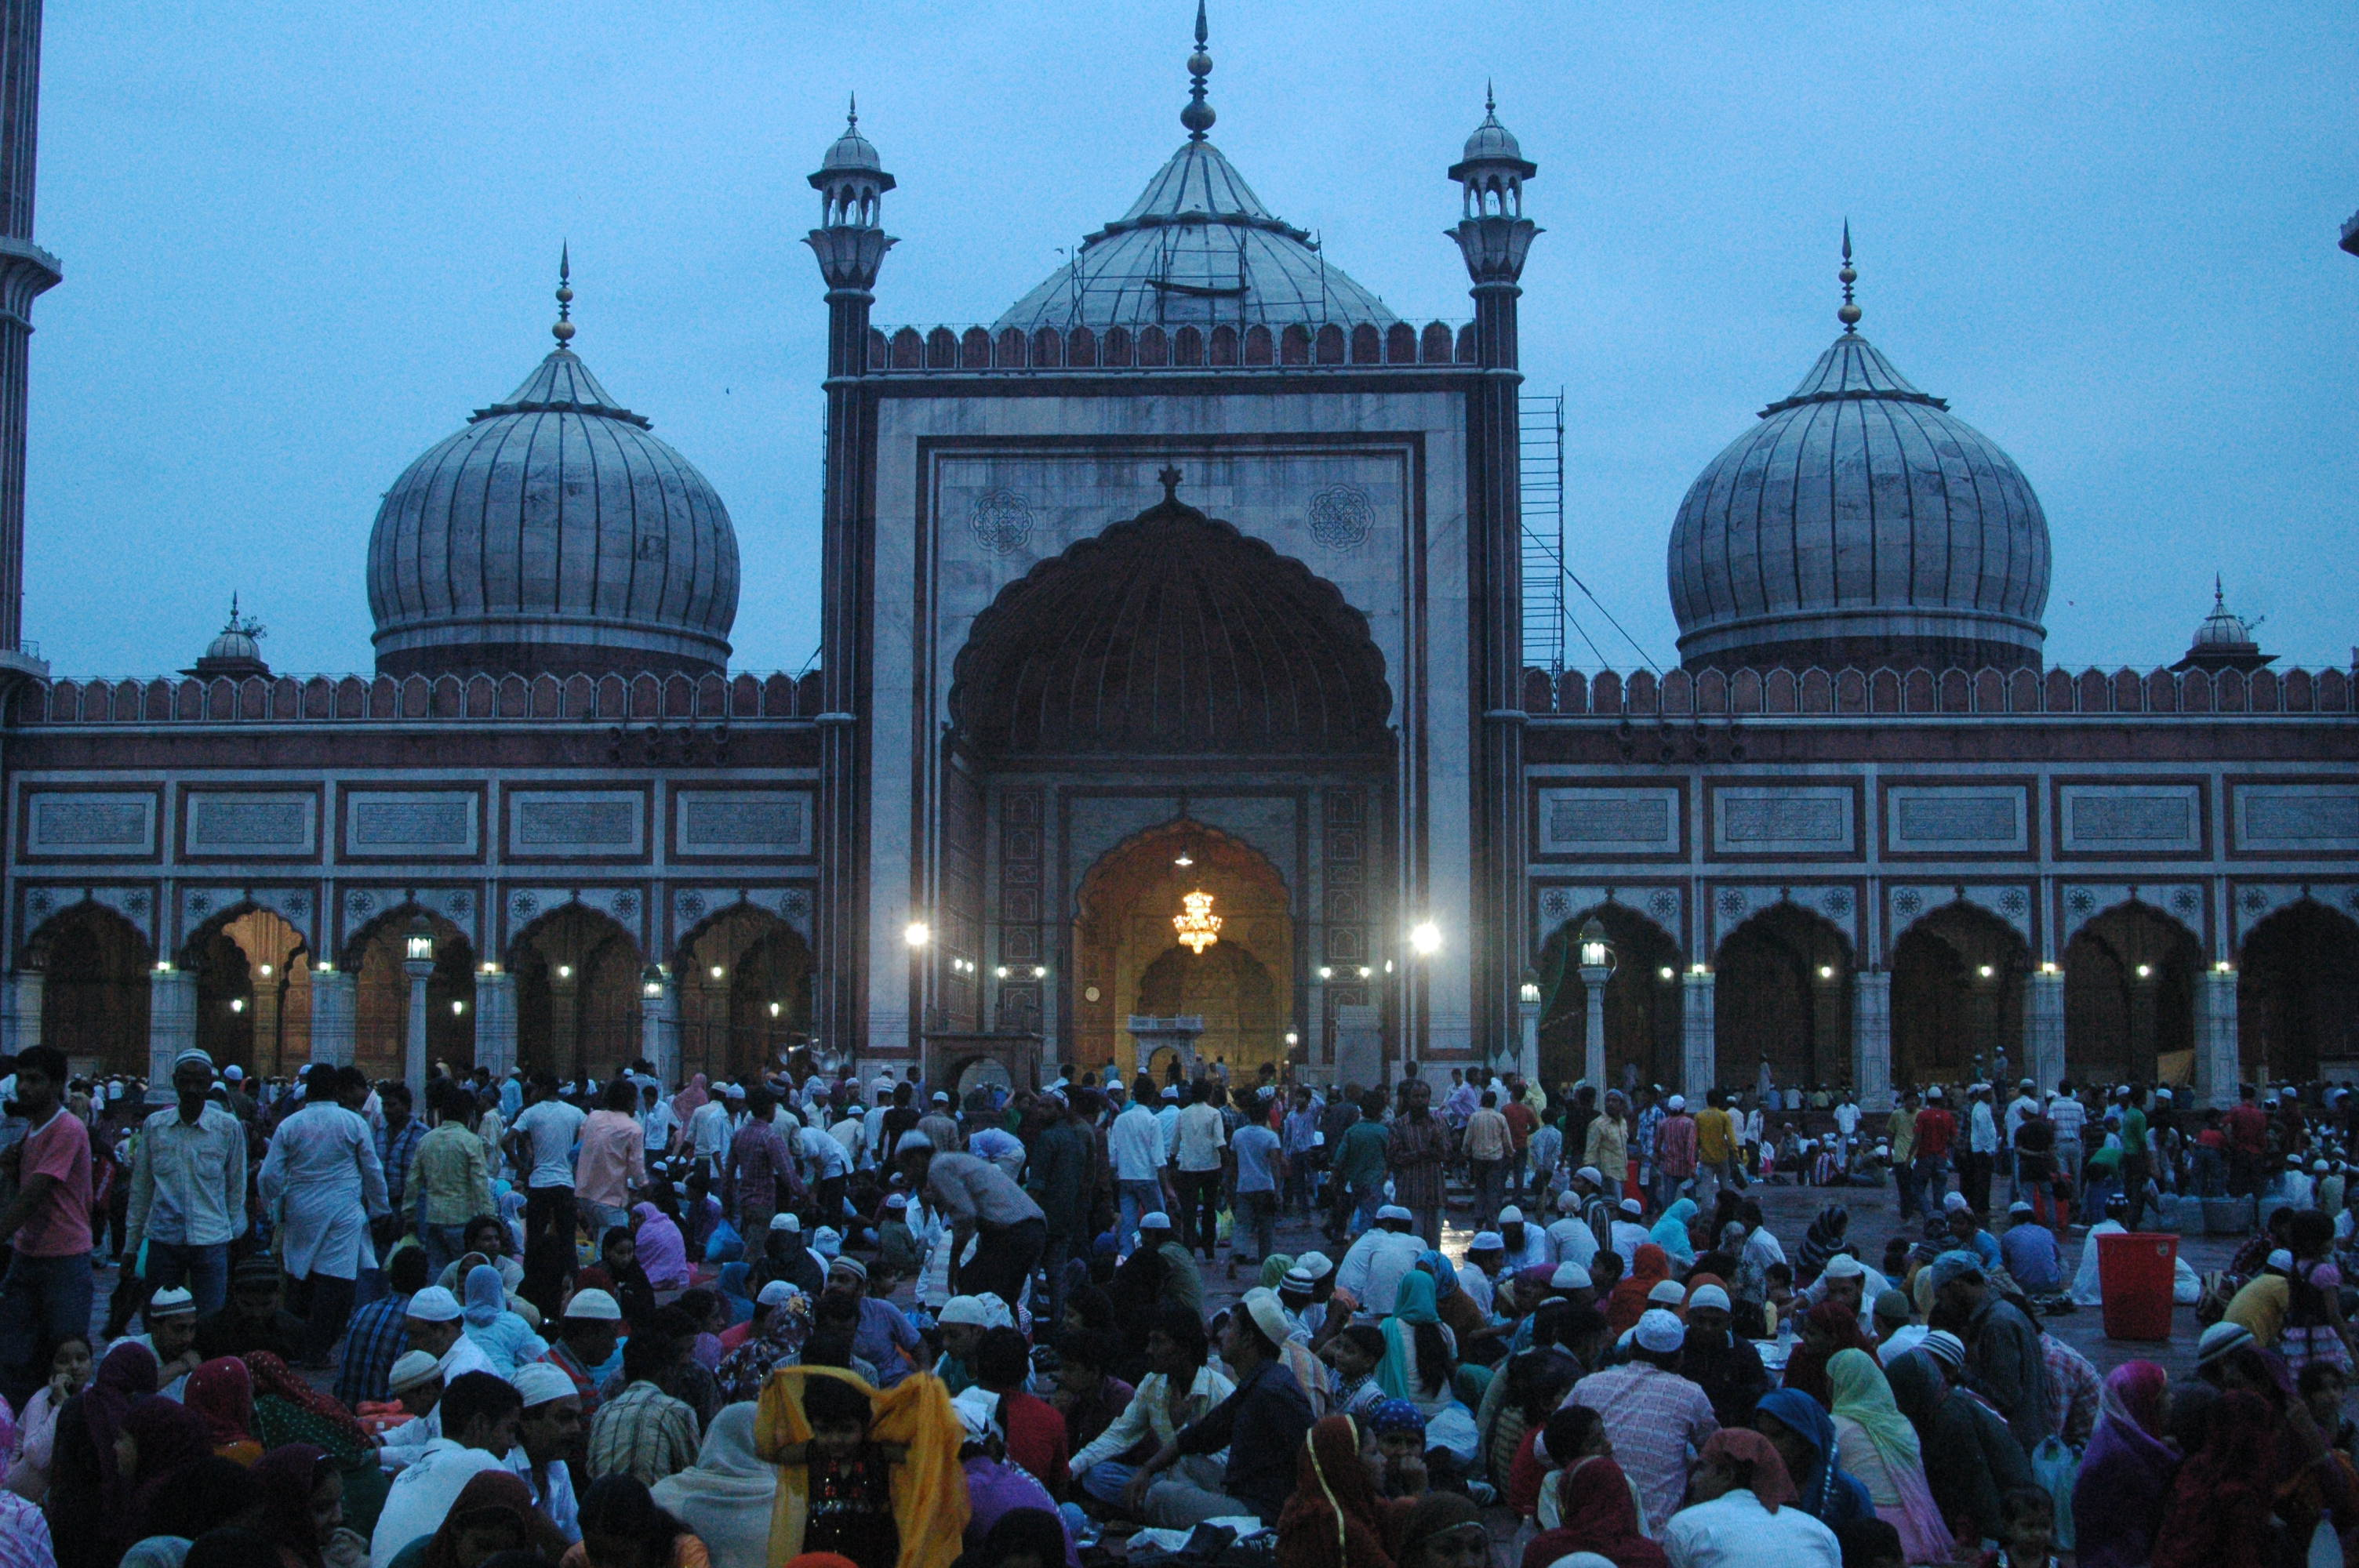 At twilight, huge crowd converges inside the Jama masjid to break their fast